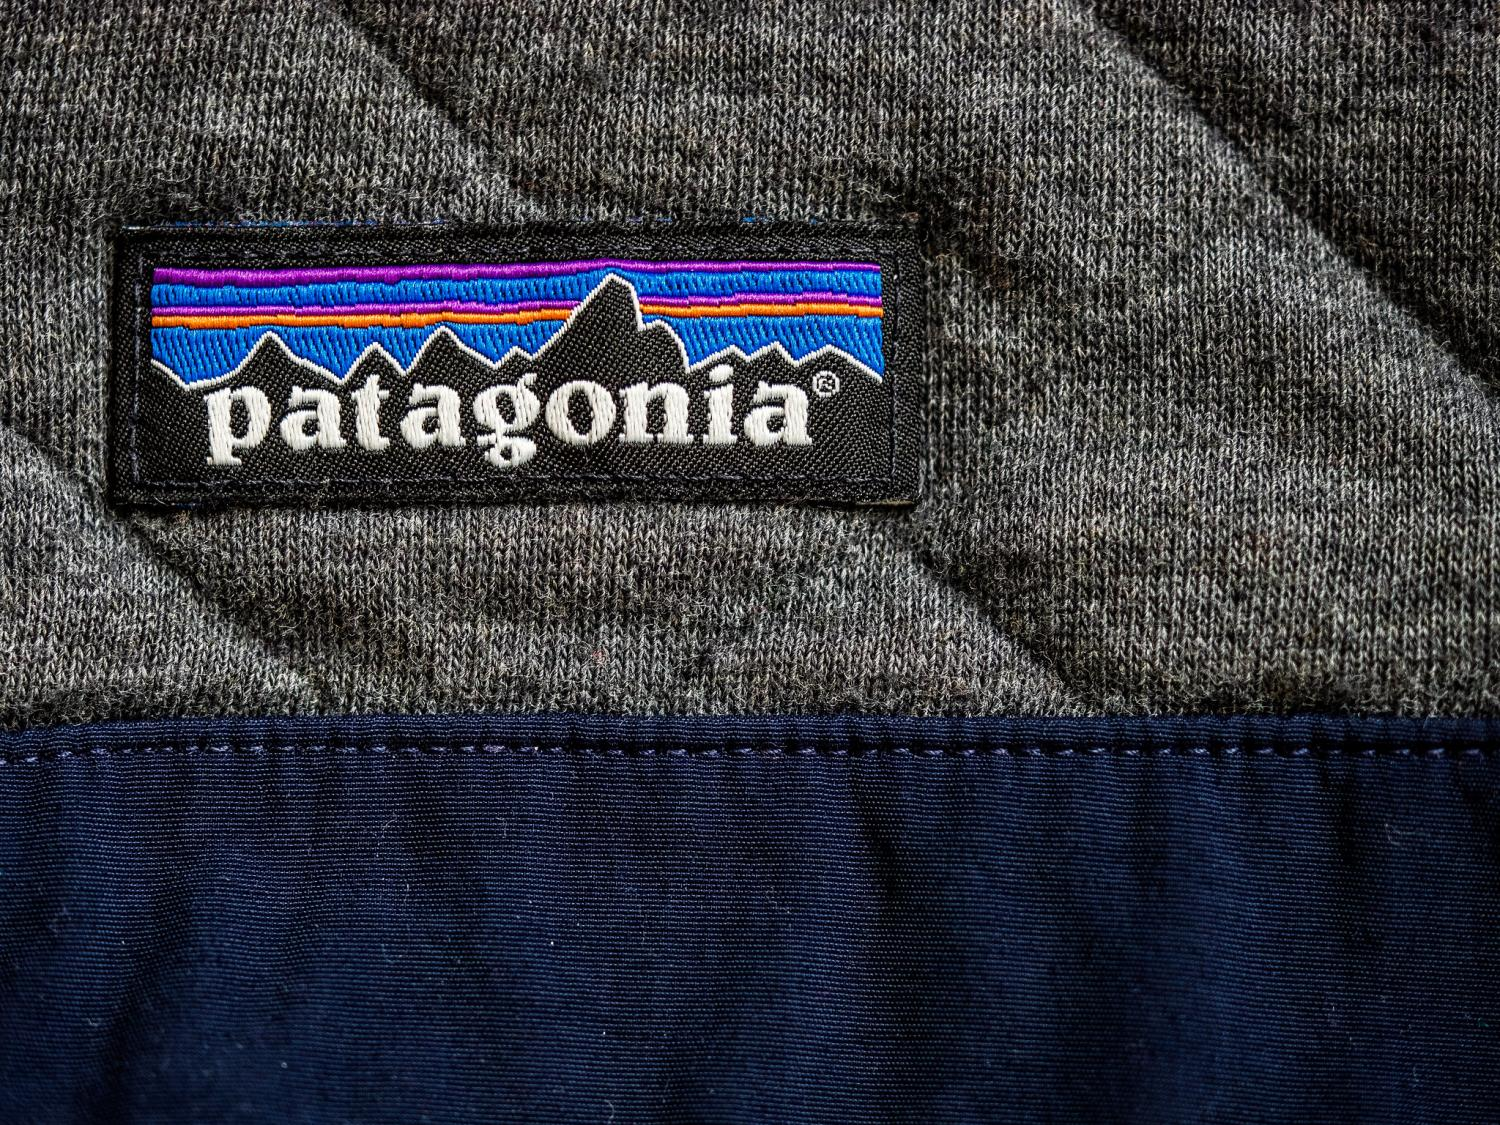 Patagonia supply chain